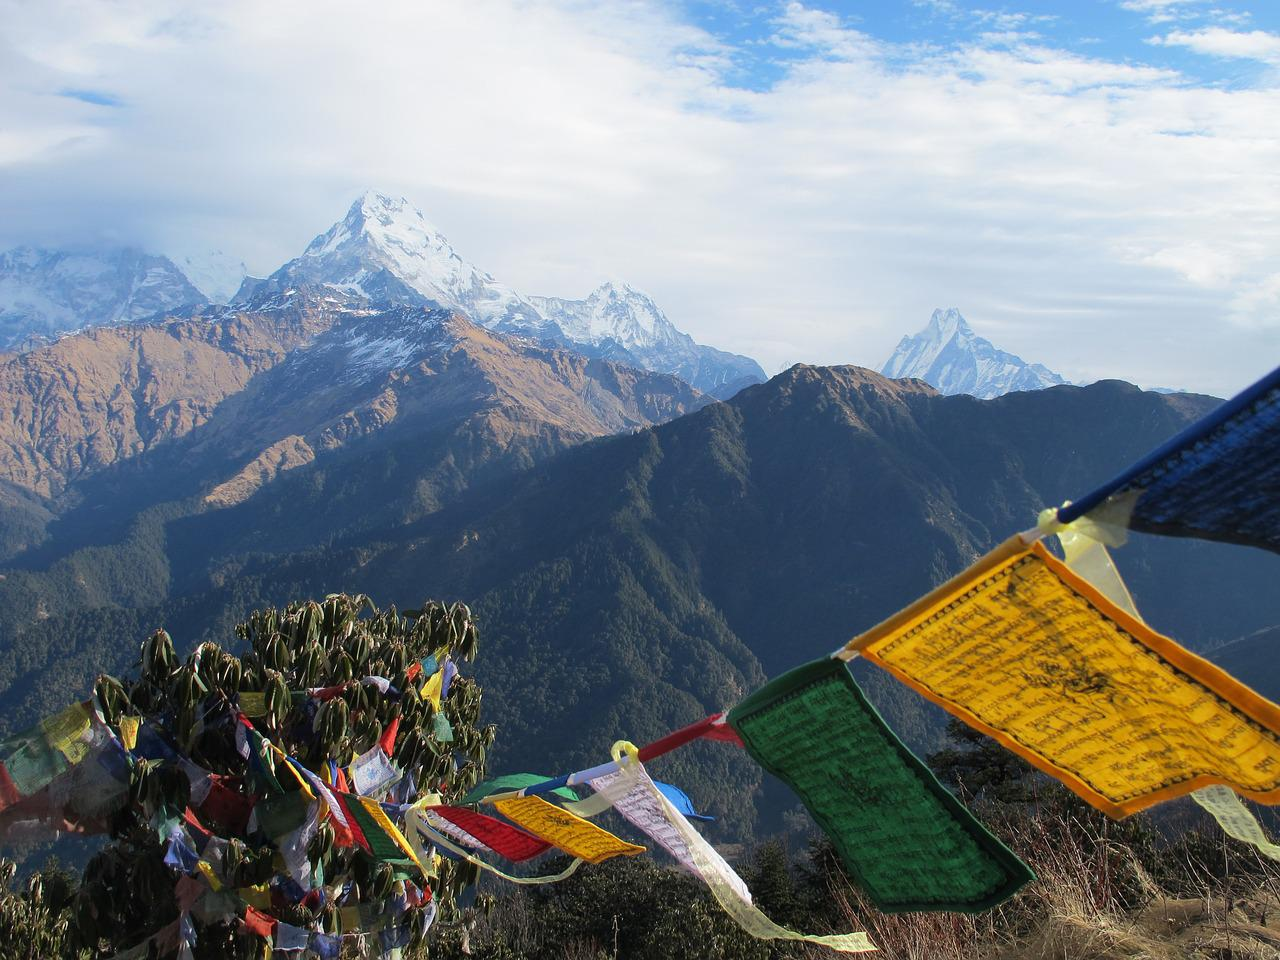 a personal recount on visiting nepal and the himalayas mountain Trekking is the best way to get to interesting and remote mountain villages of nepal and to enjoy views of the focused peaks together with their lifestyle untouched by modern civilization the river rafting which is known as white water adventure represents another major attractions.